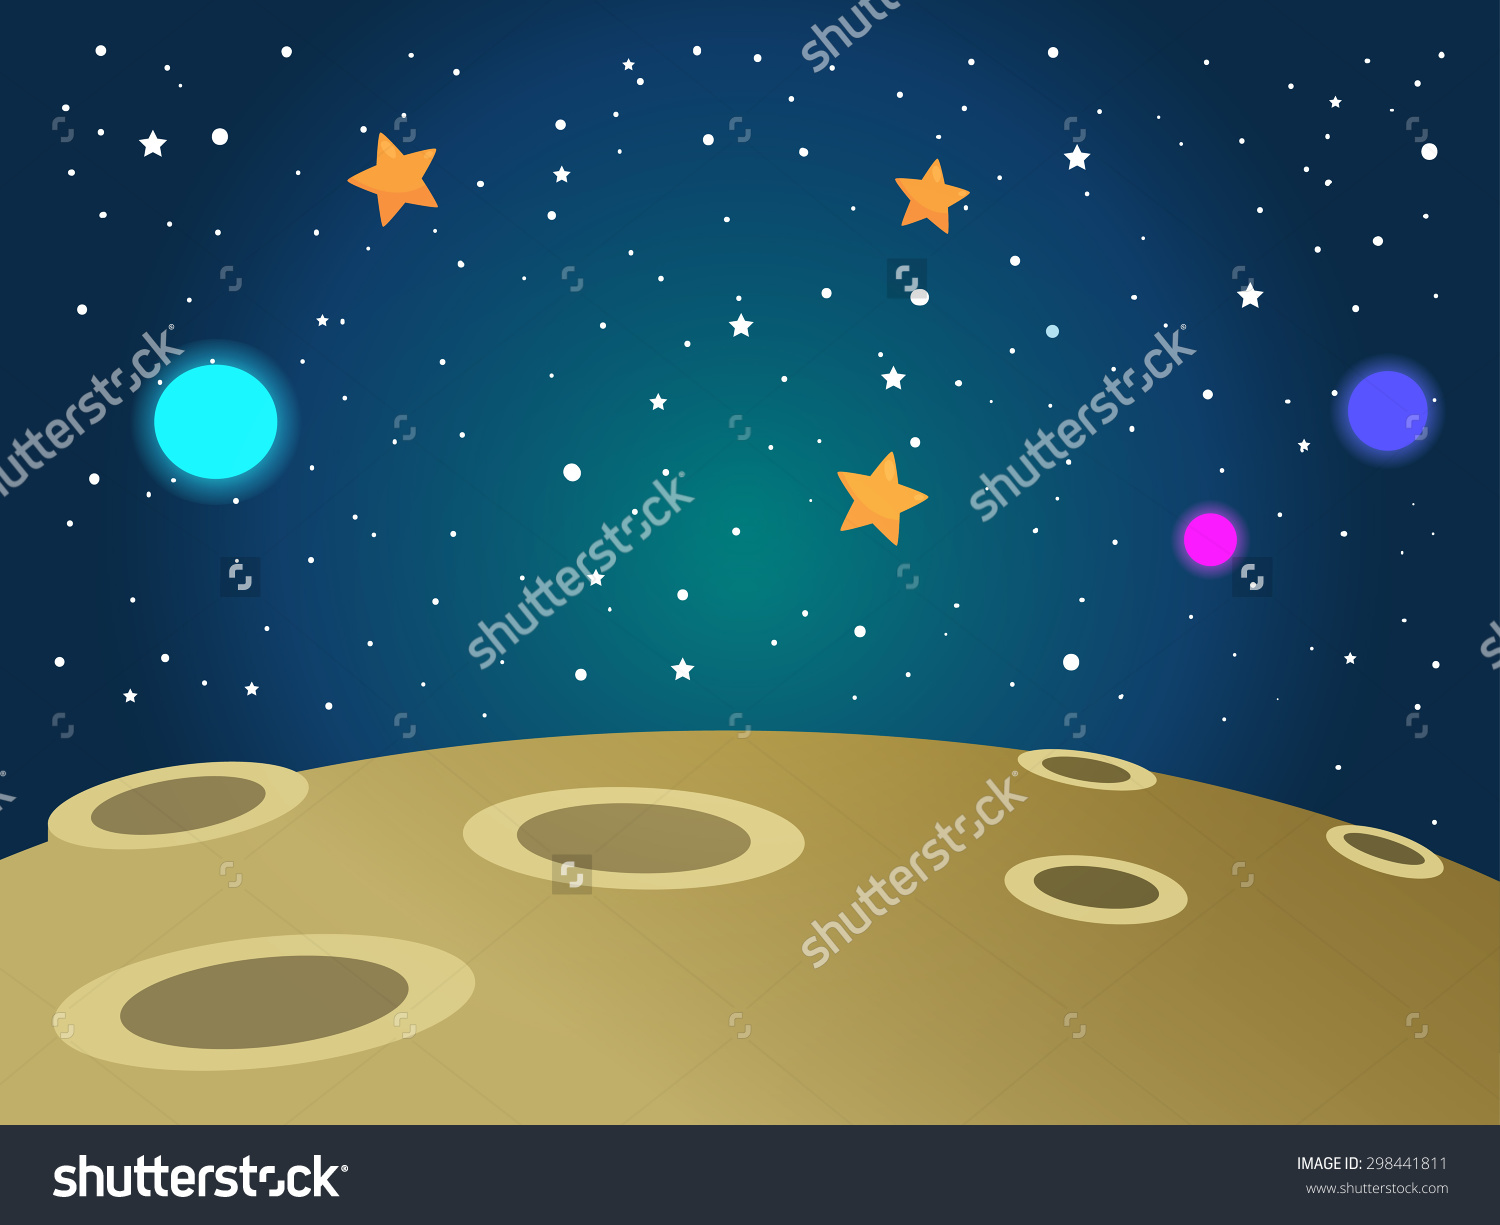 Background clipart outer space.  collection of high